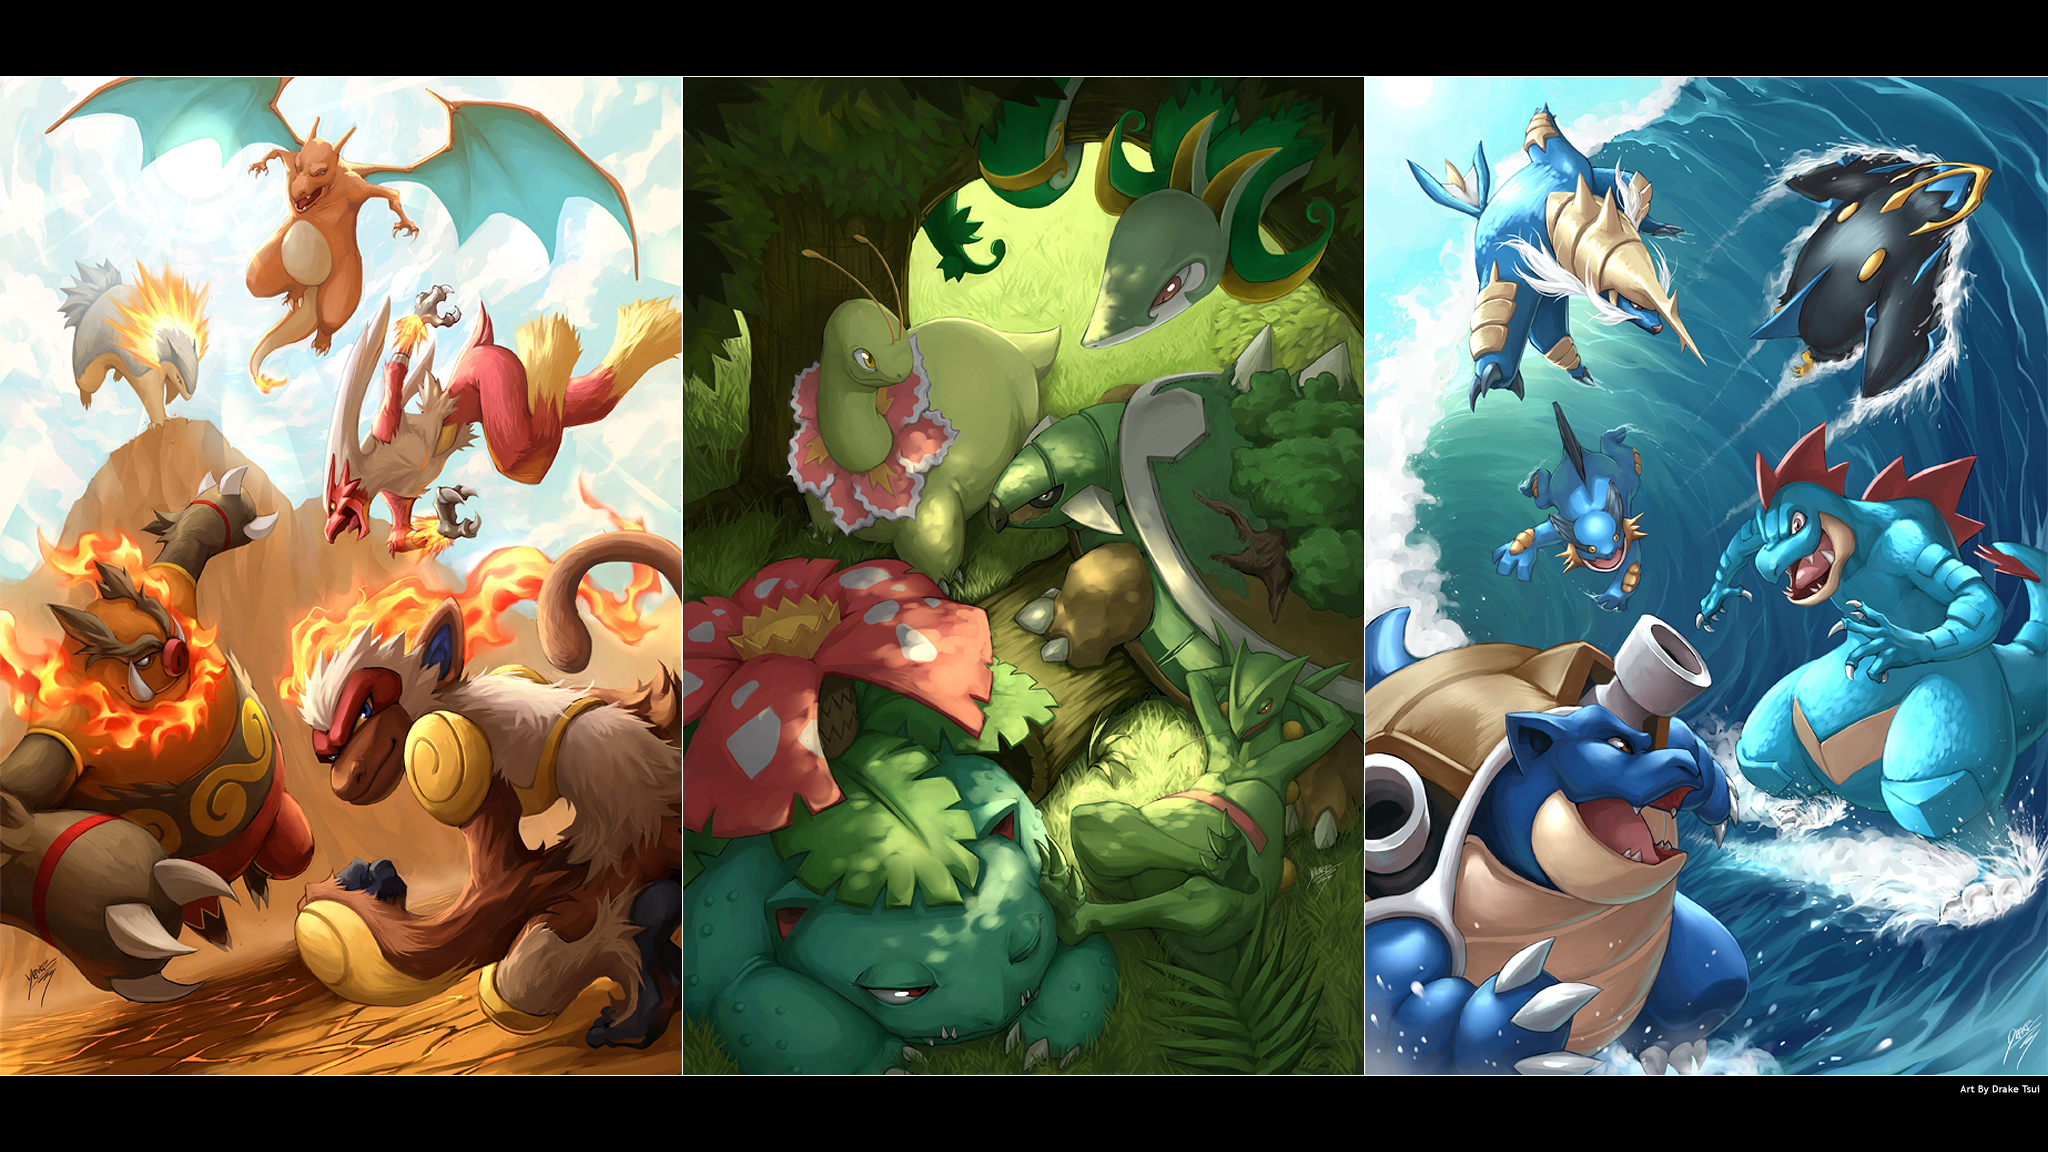 Pokemon Pictures That Are 2048 By 1152 Pixels: Pokemon Wallpaper